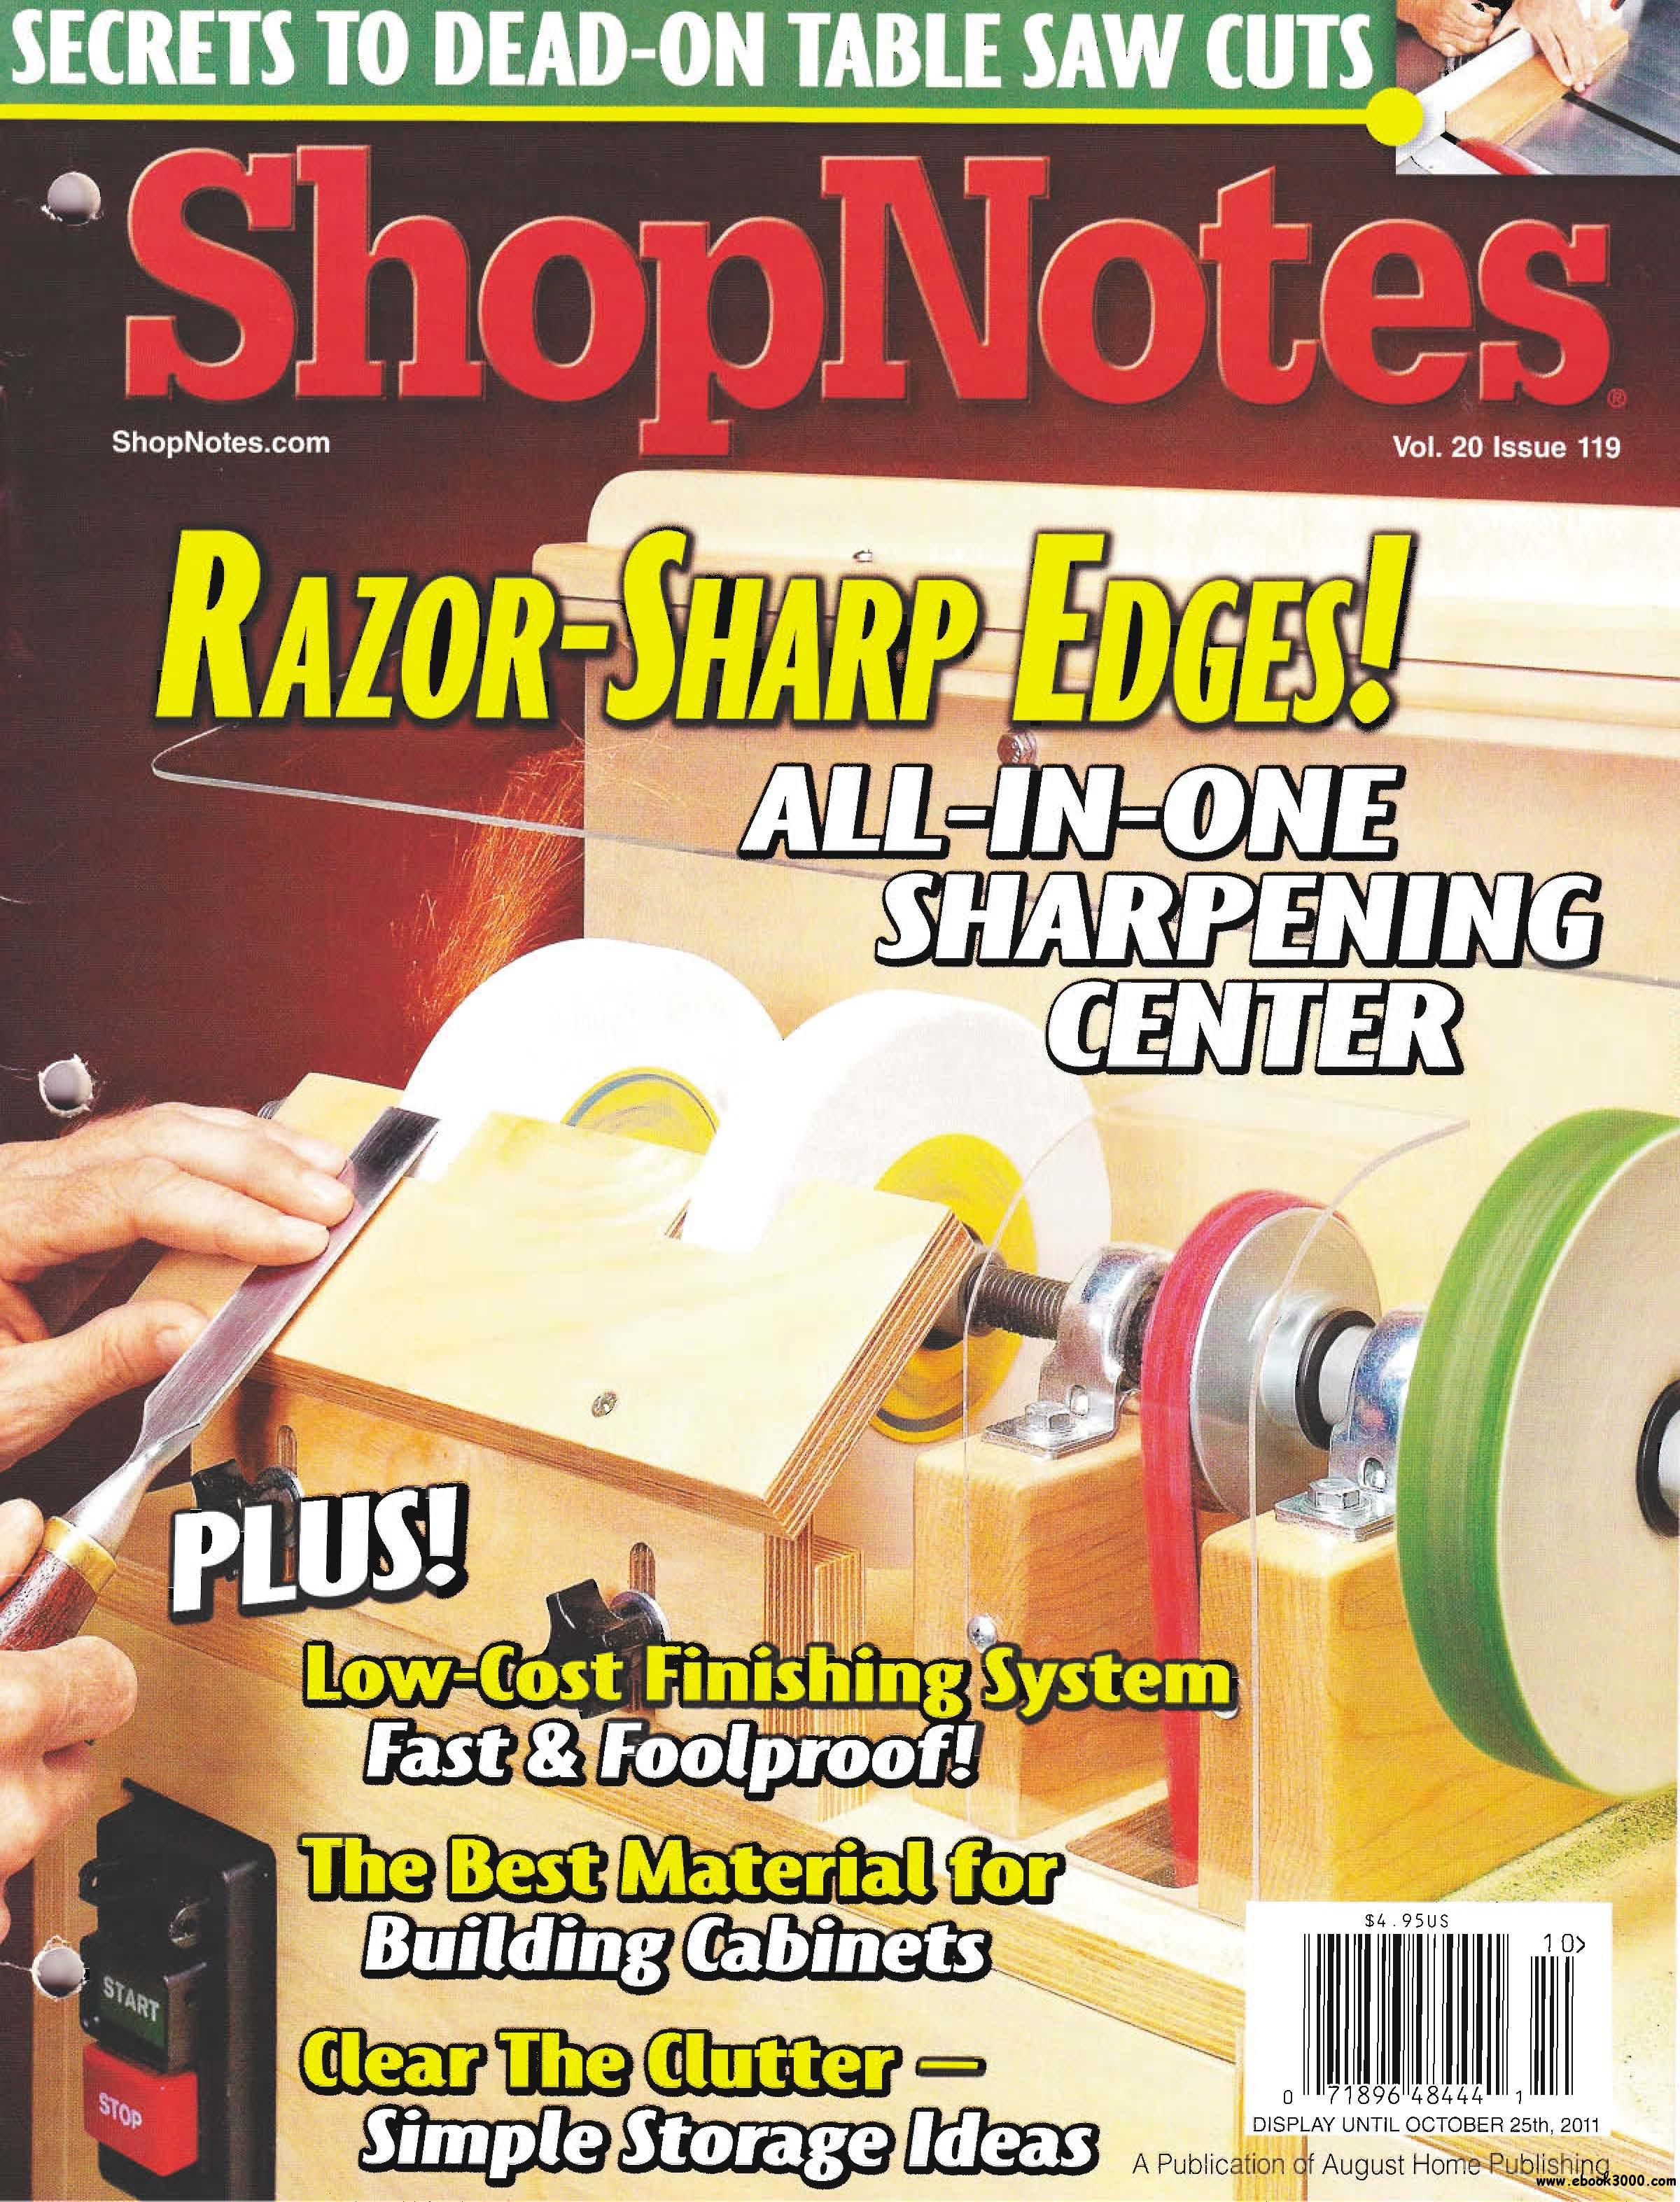 ShopNotes Issue #119 (September - October 2011) download dree